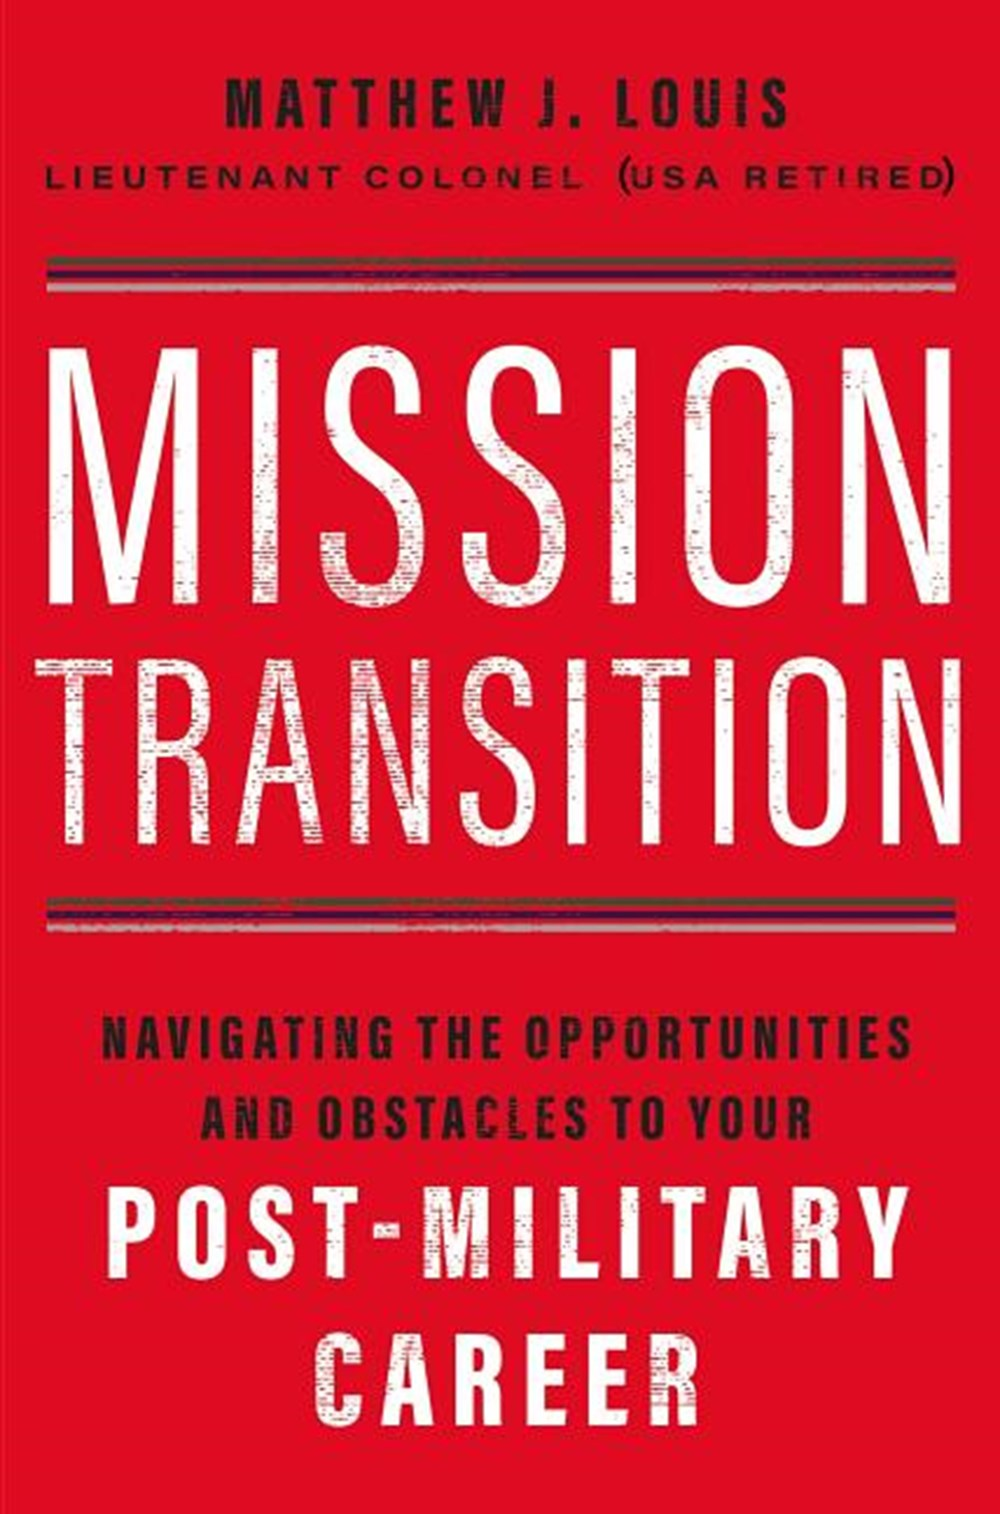 Mission Transition Navigating the Opportunities and Obstacles to Your Post-Military Career